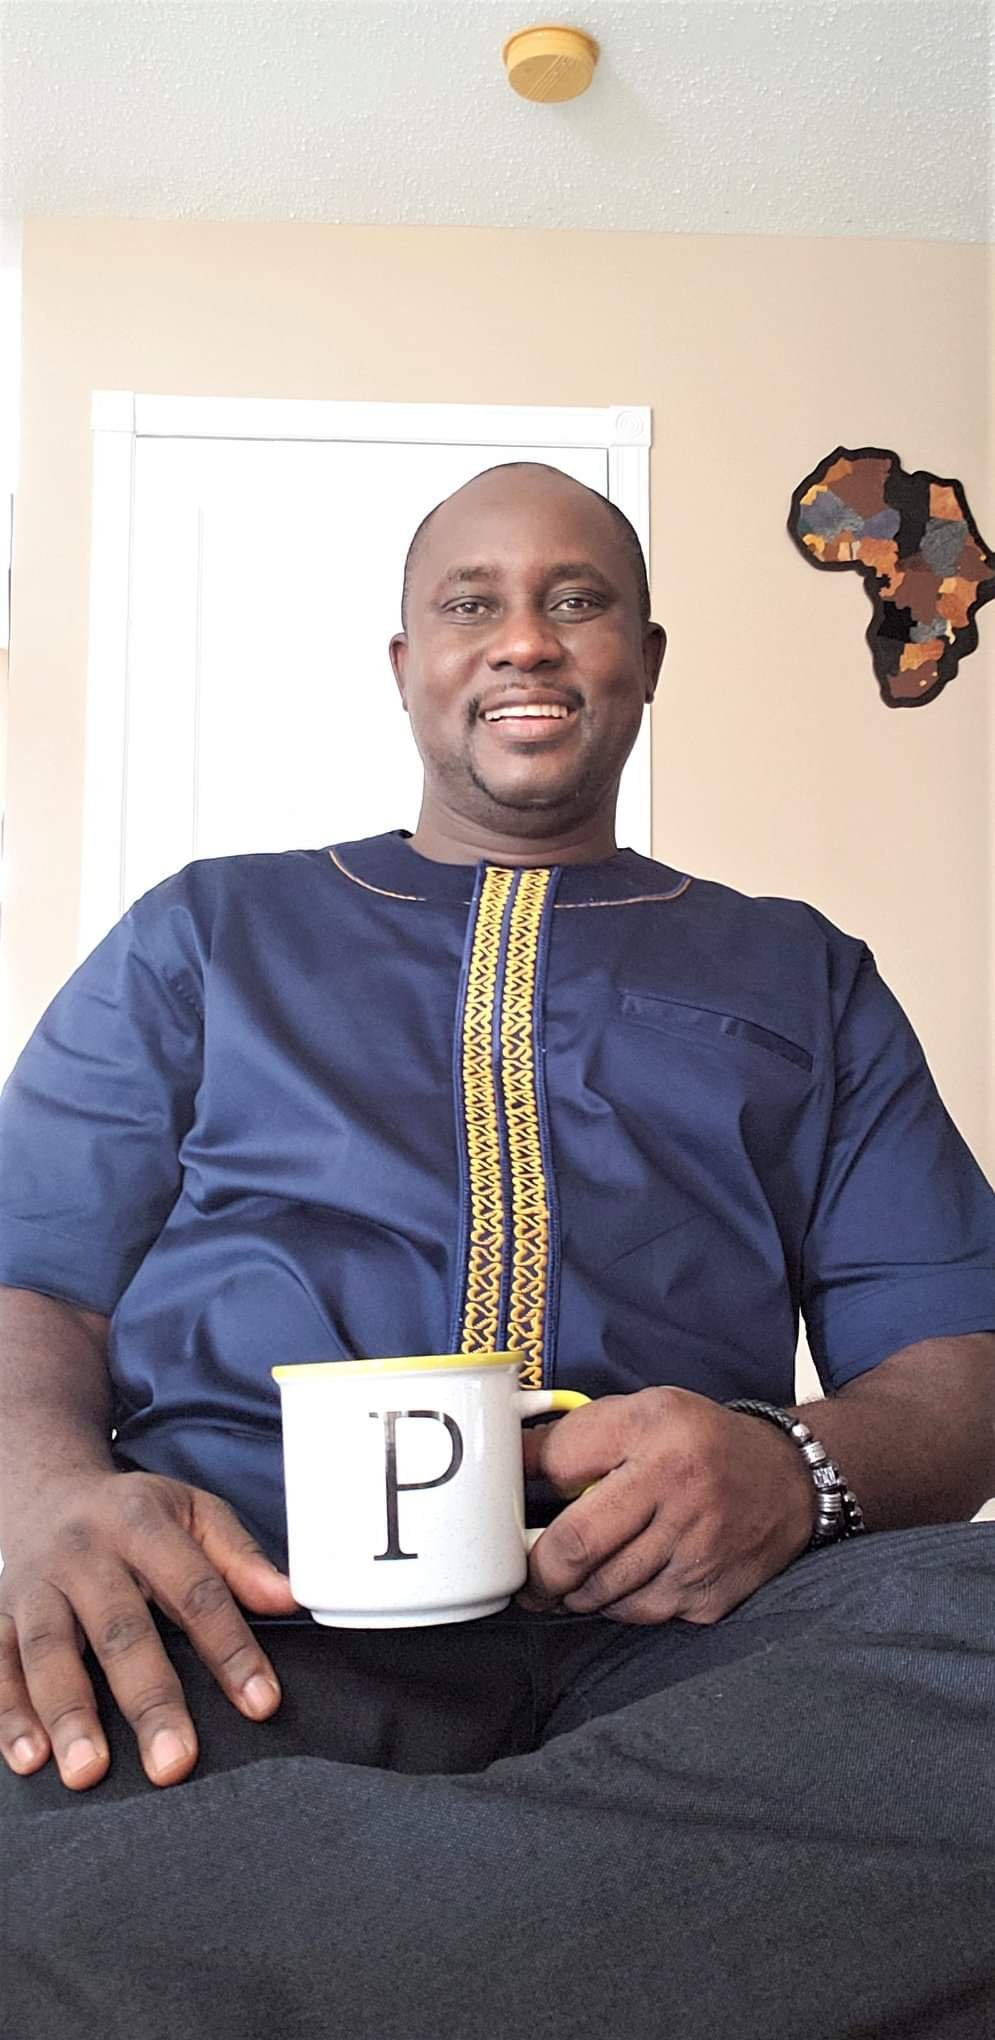 Pictures of professor Pius Adesanmi, the only Nigerian on board the Ethiopian Plane that crashed killing all 157 passengers 5